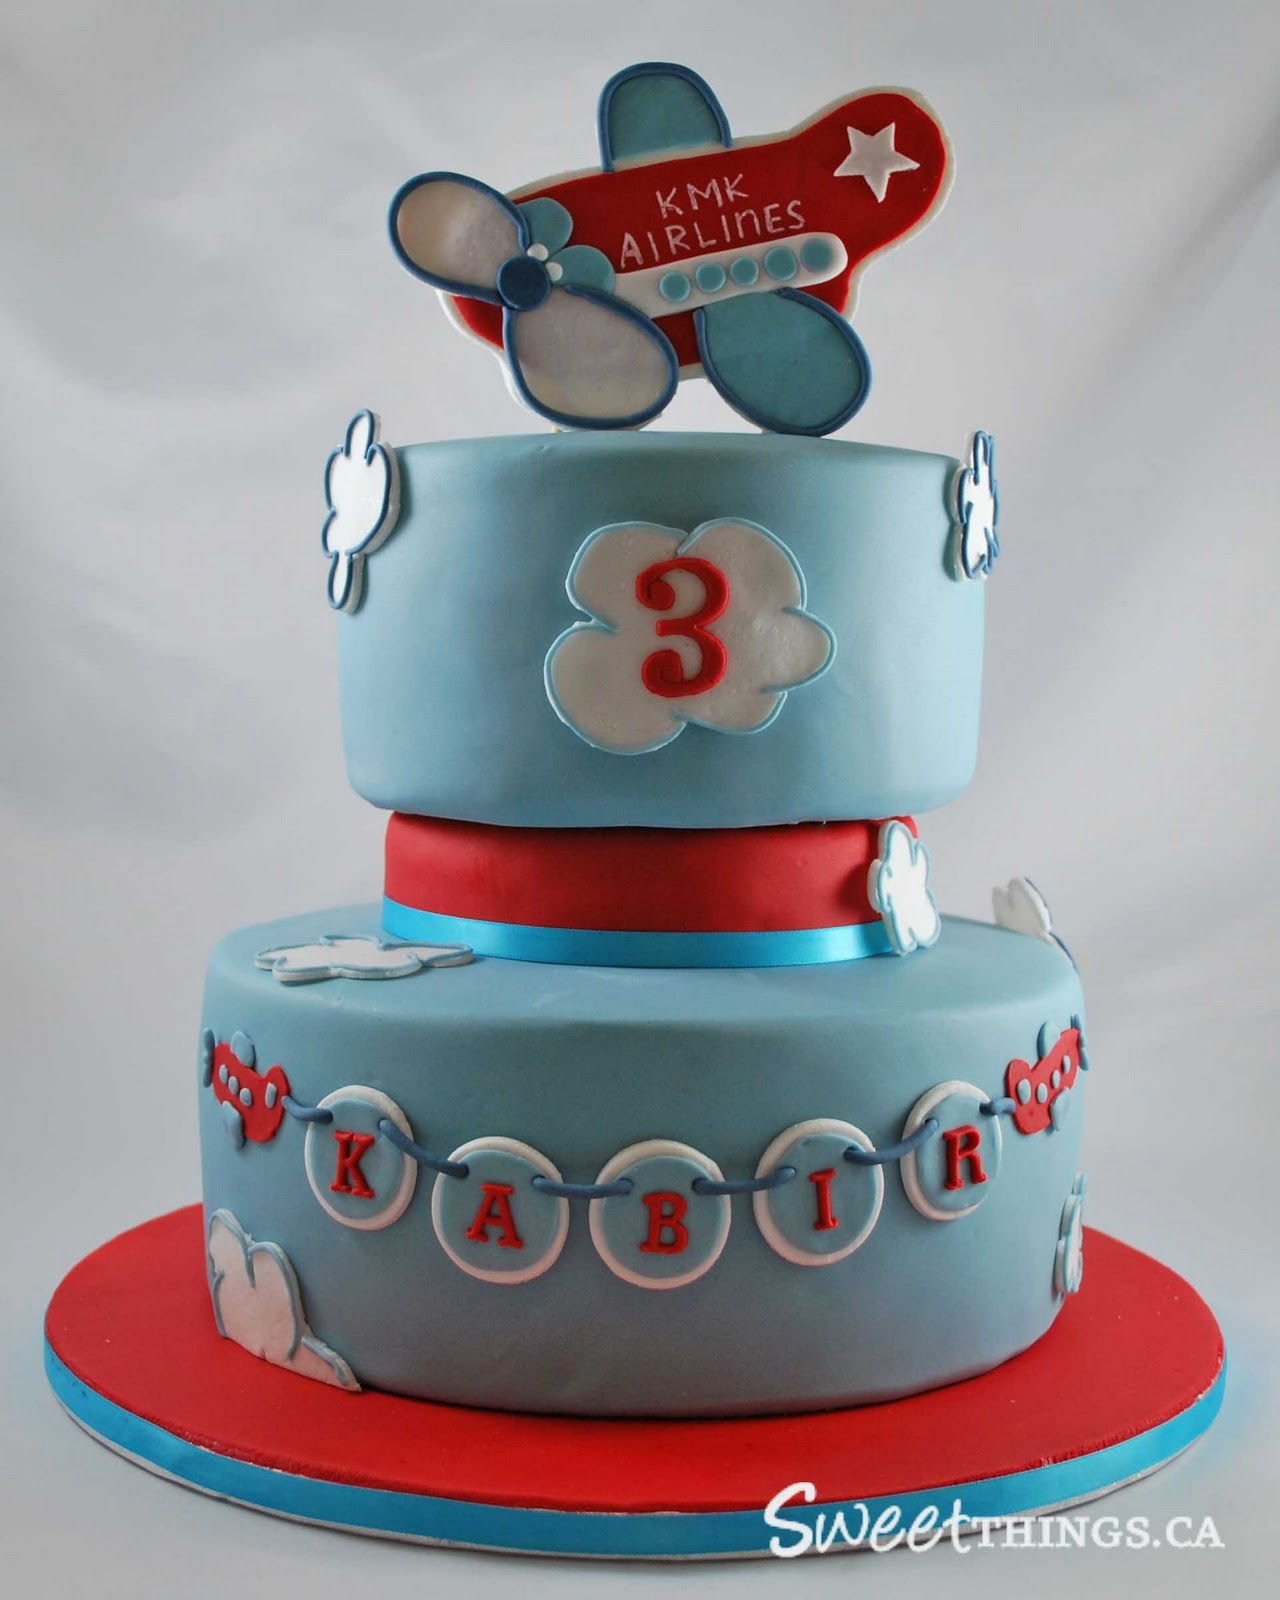 Airplane Birthday Party Cake Ideas Image Inspiration of Cake and